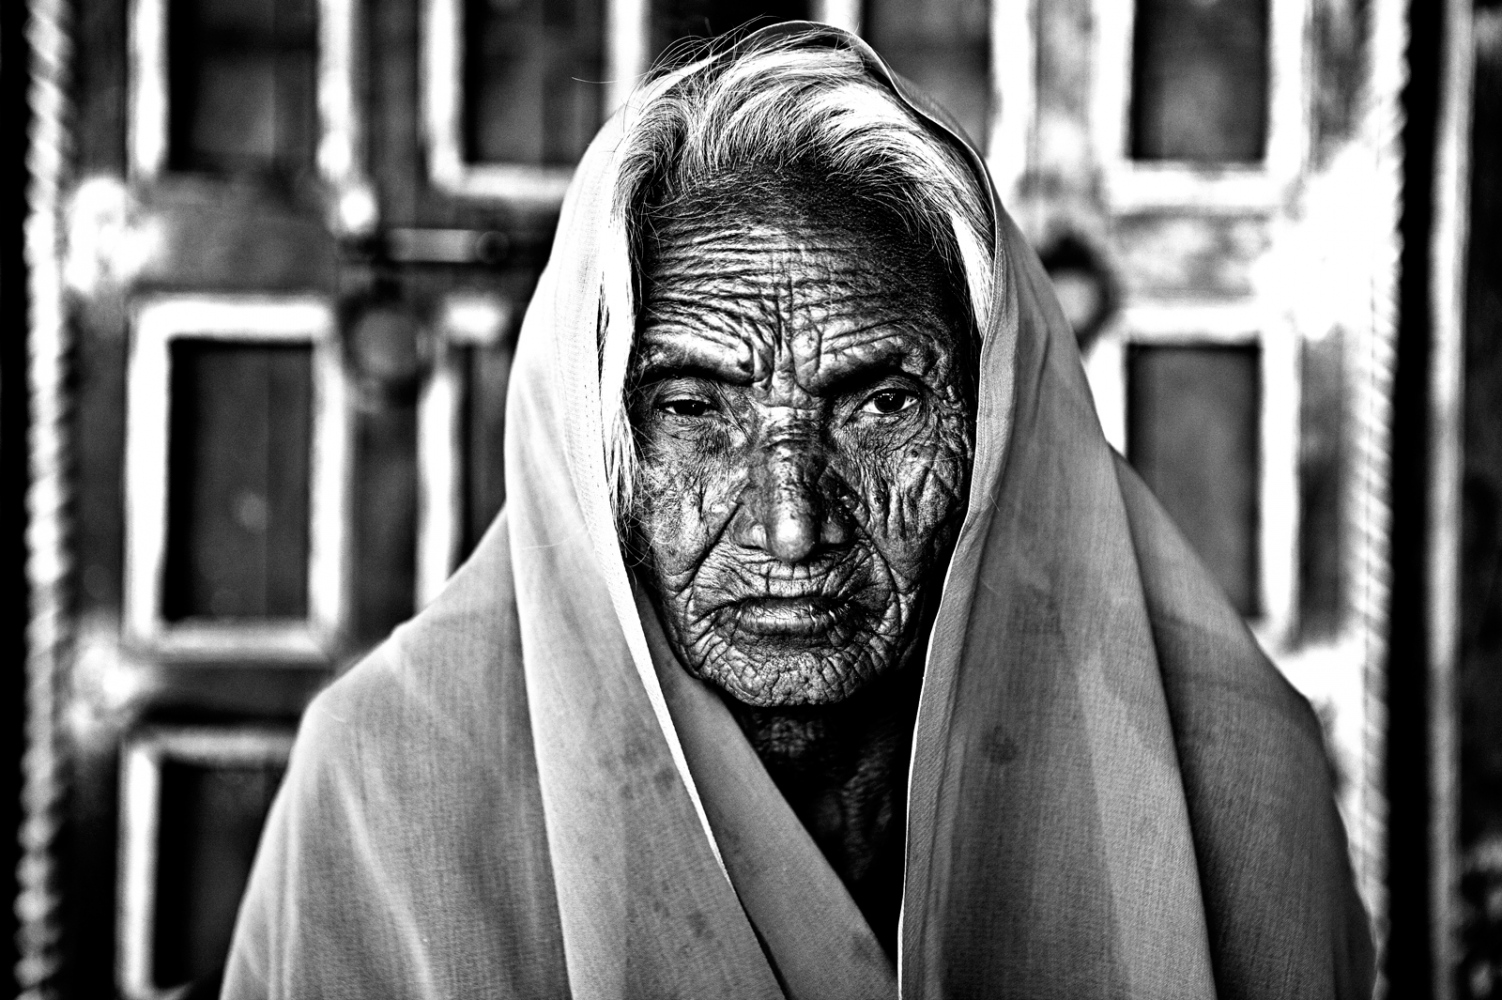 Rajasthan The tribal widowMeera Baiwalked for many miles thruthe desert to be part of the monthly widow meeting.